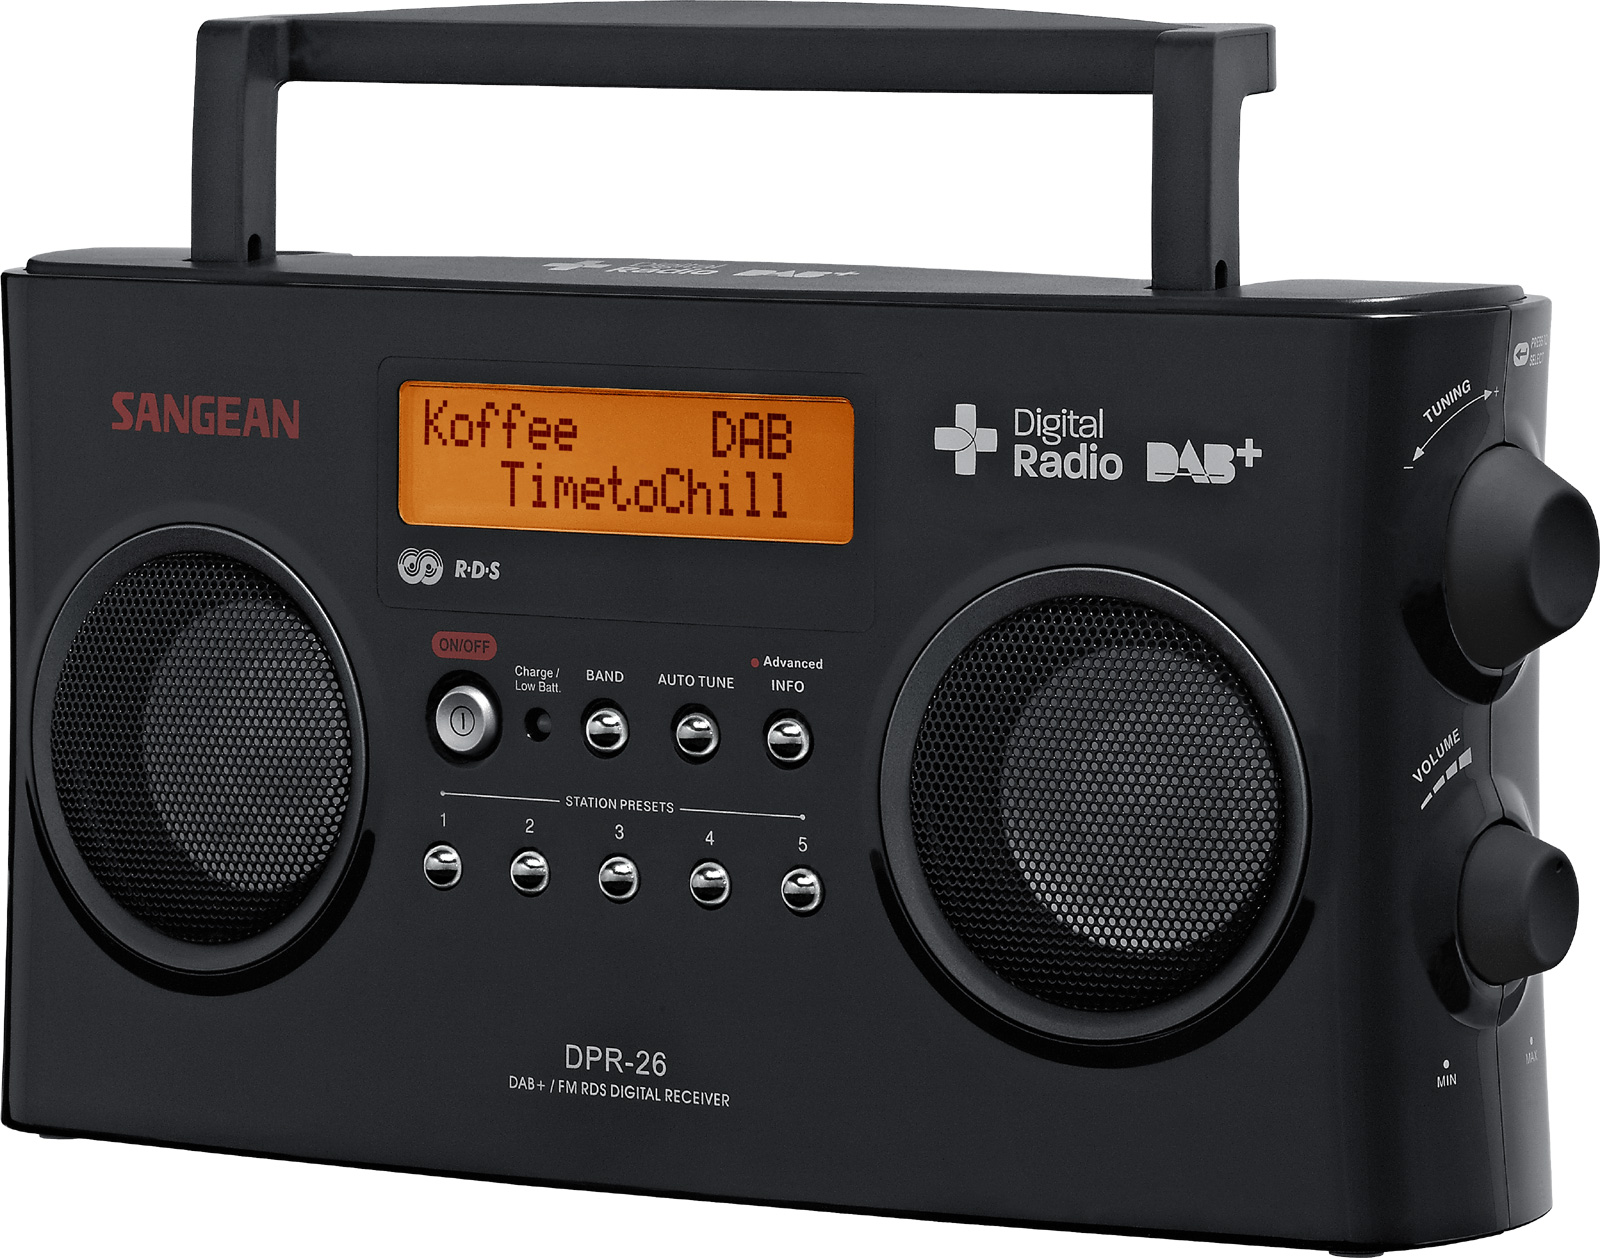 sangean dpr 26 dab fm rds digital radio stereo receiver. Black Bedroom Furniture Sets. Home Design Ideas